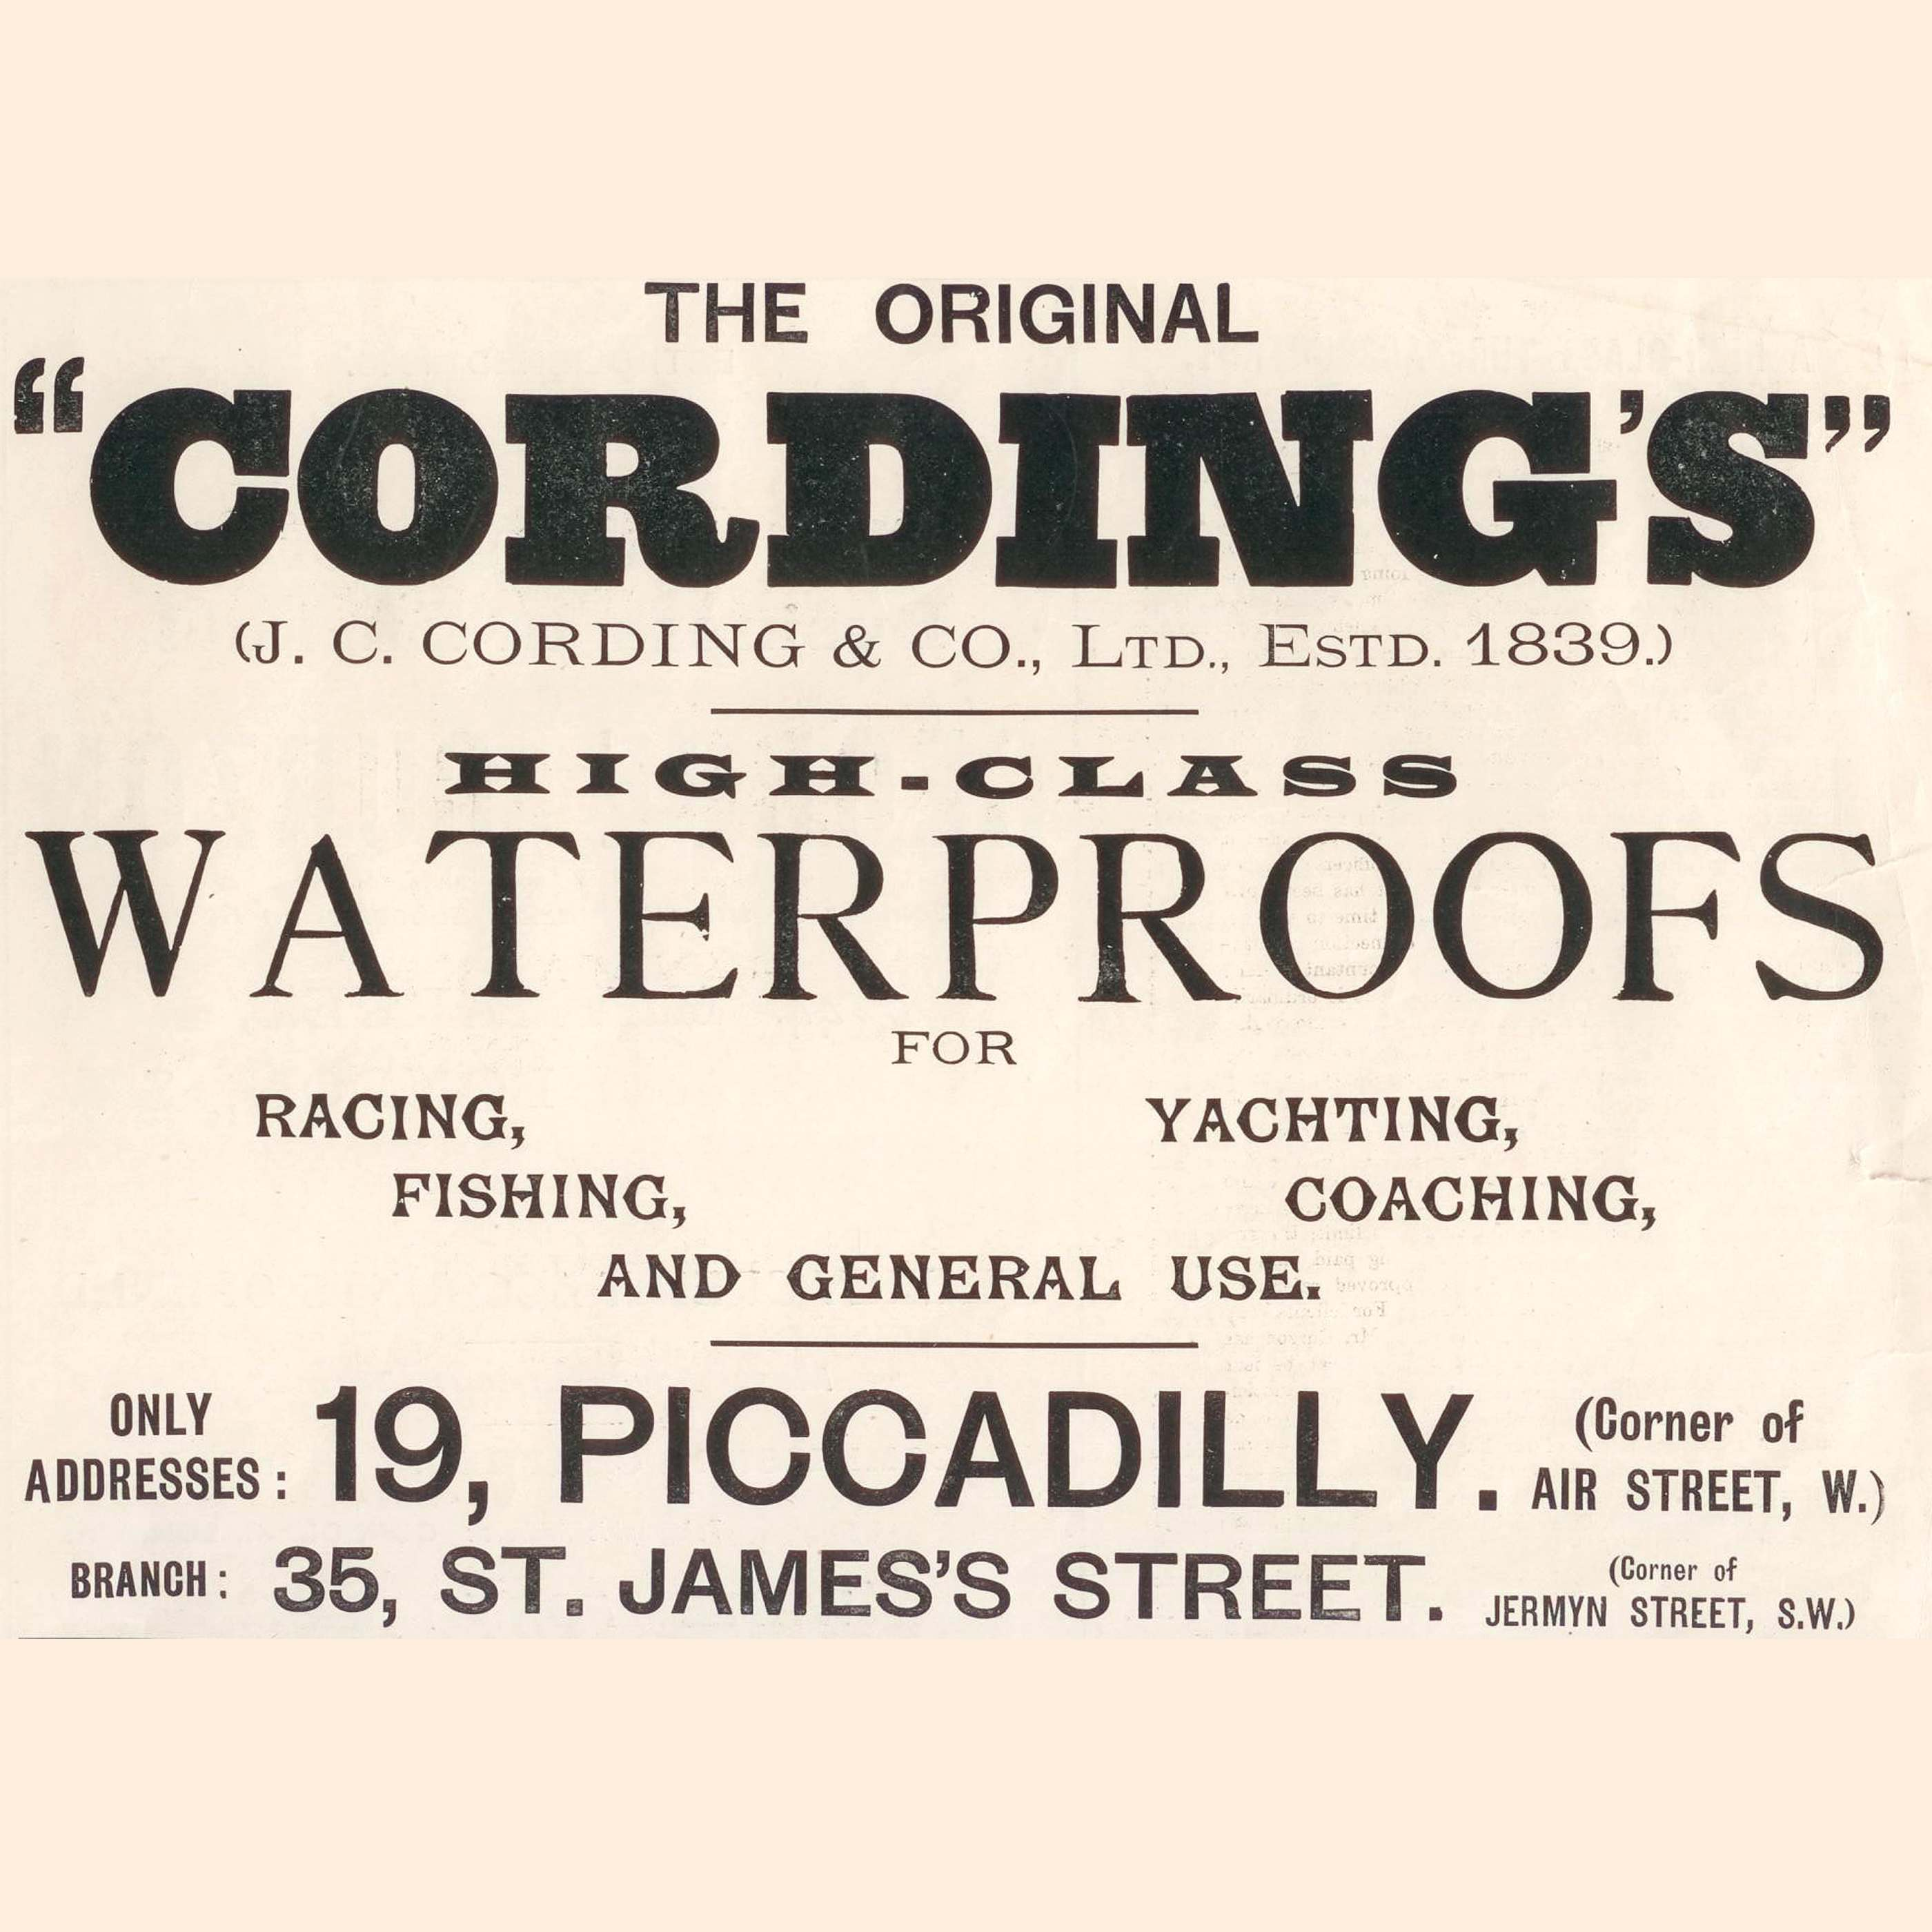 J.C Cording and co Ltd: waterproofers